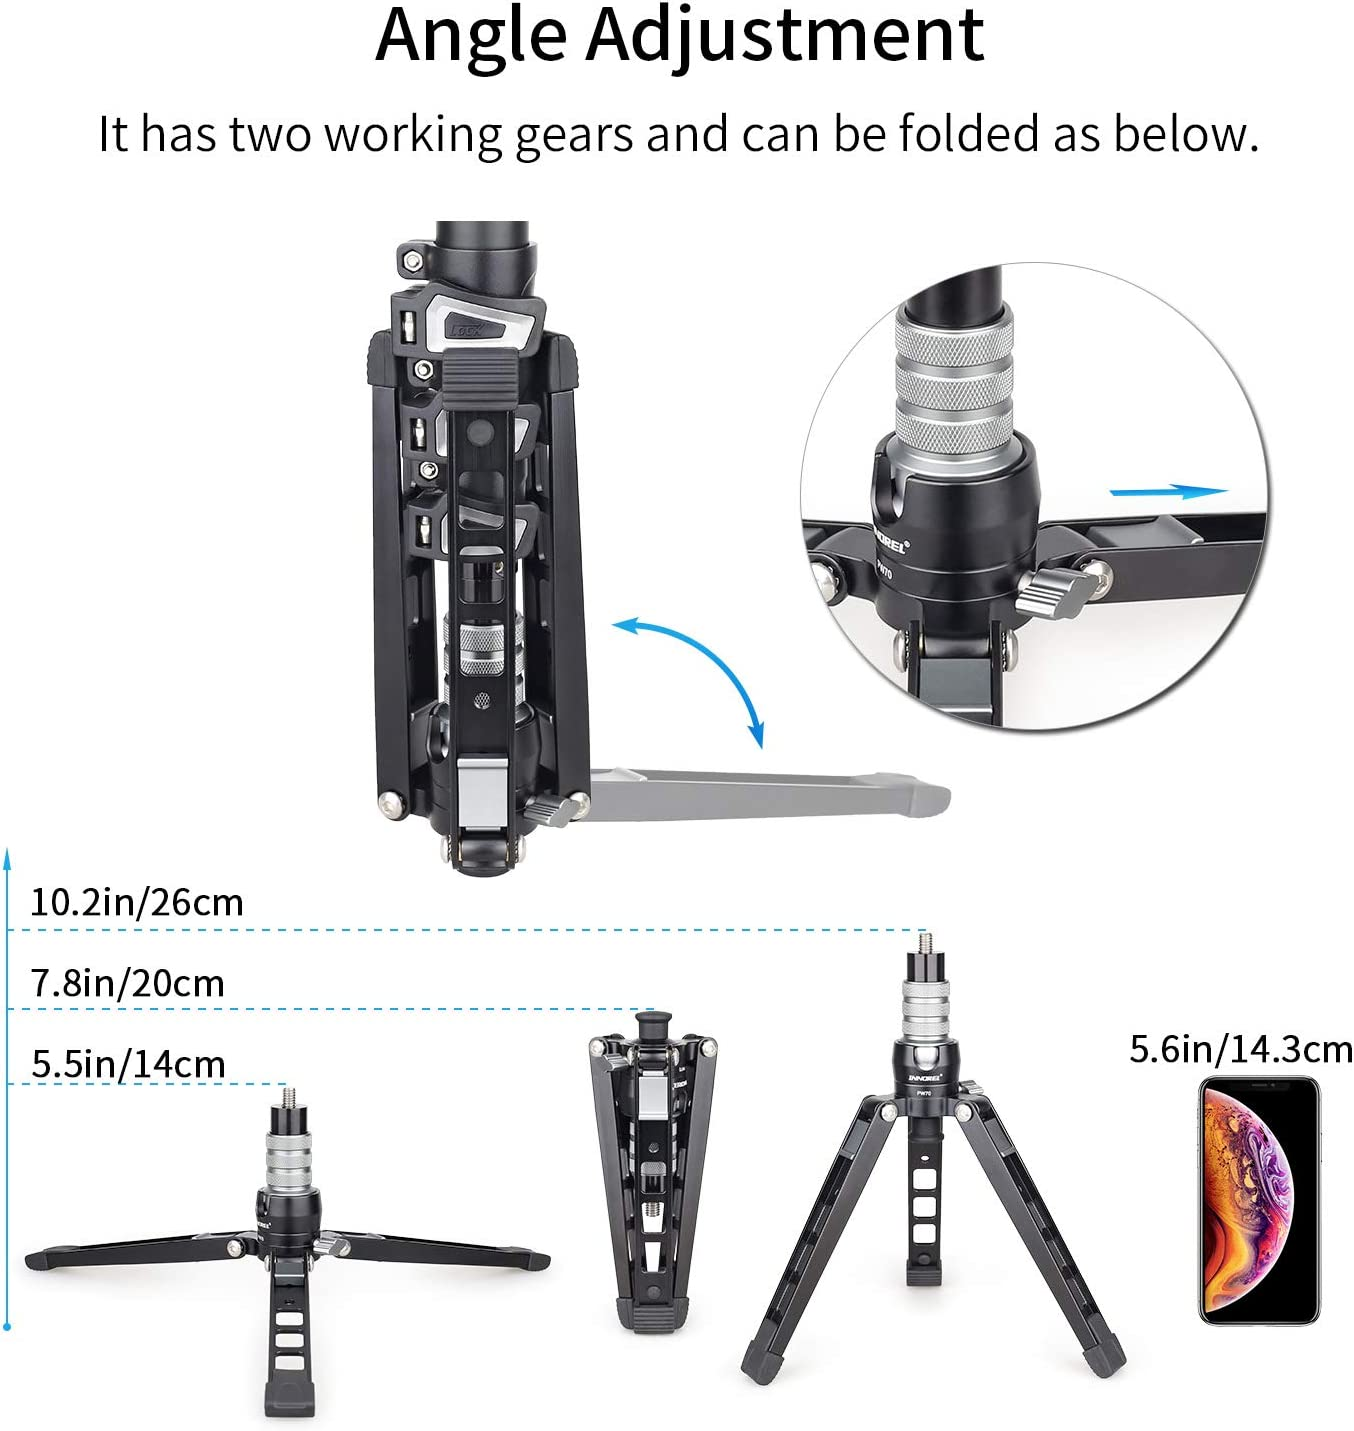 Max Load 33 lb for Camera Mobile Phone Action Cameras Mini Tabletop Tripod Stand-INNOREL PW70,DSLR Mini Tripod with 1//4 to 3//8 Screw and Cell Phone Mount CNC Aluminum Housing Video Camcorder